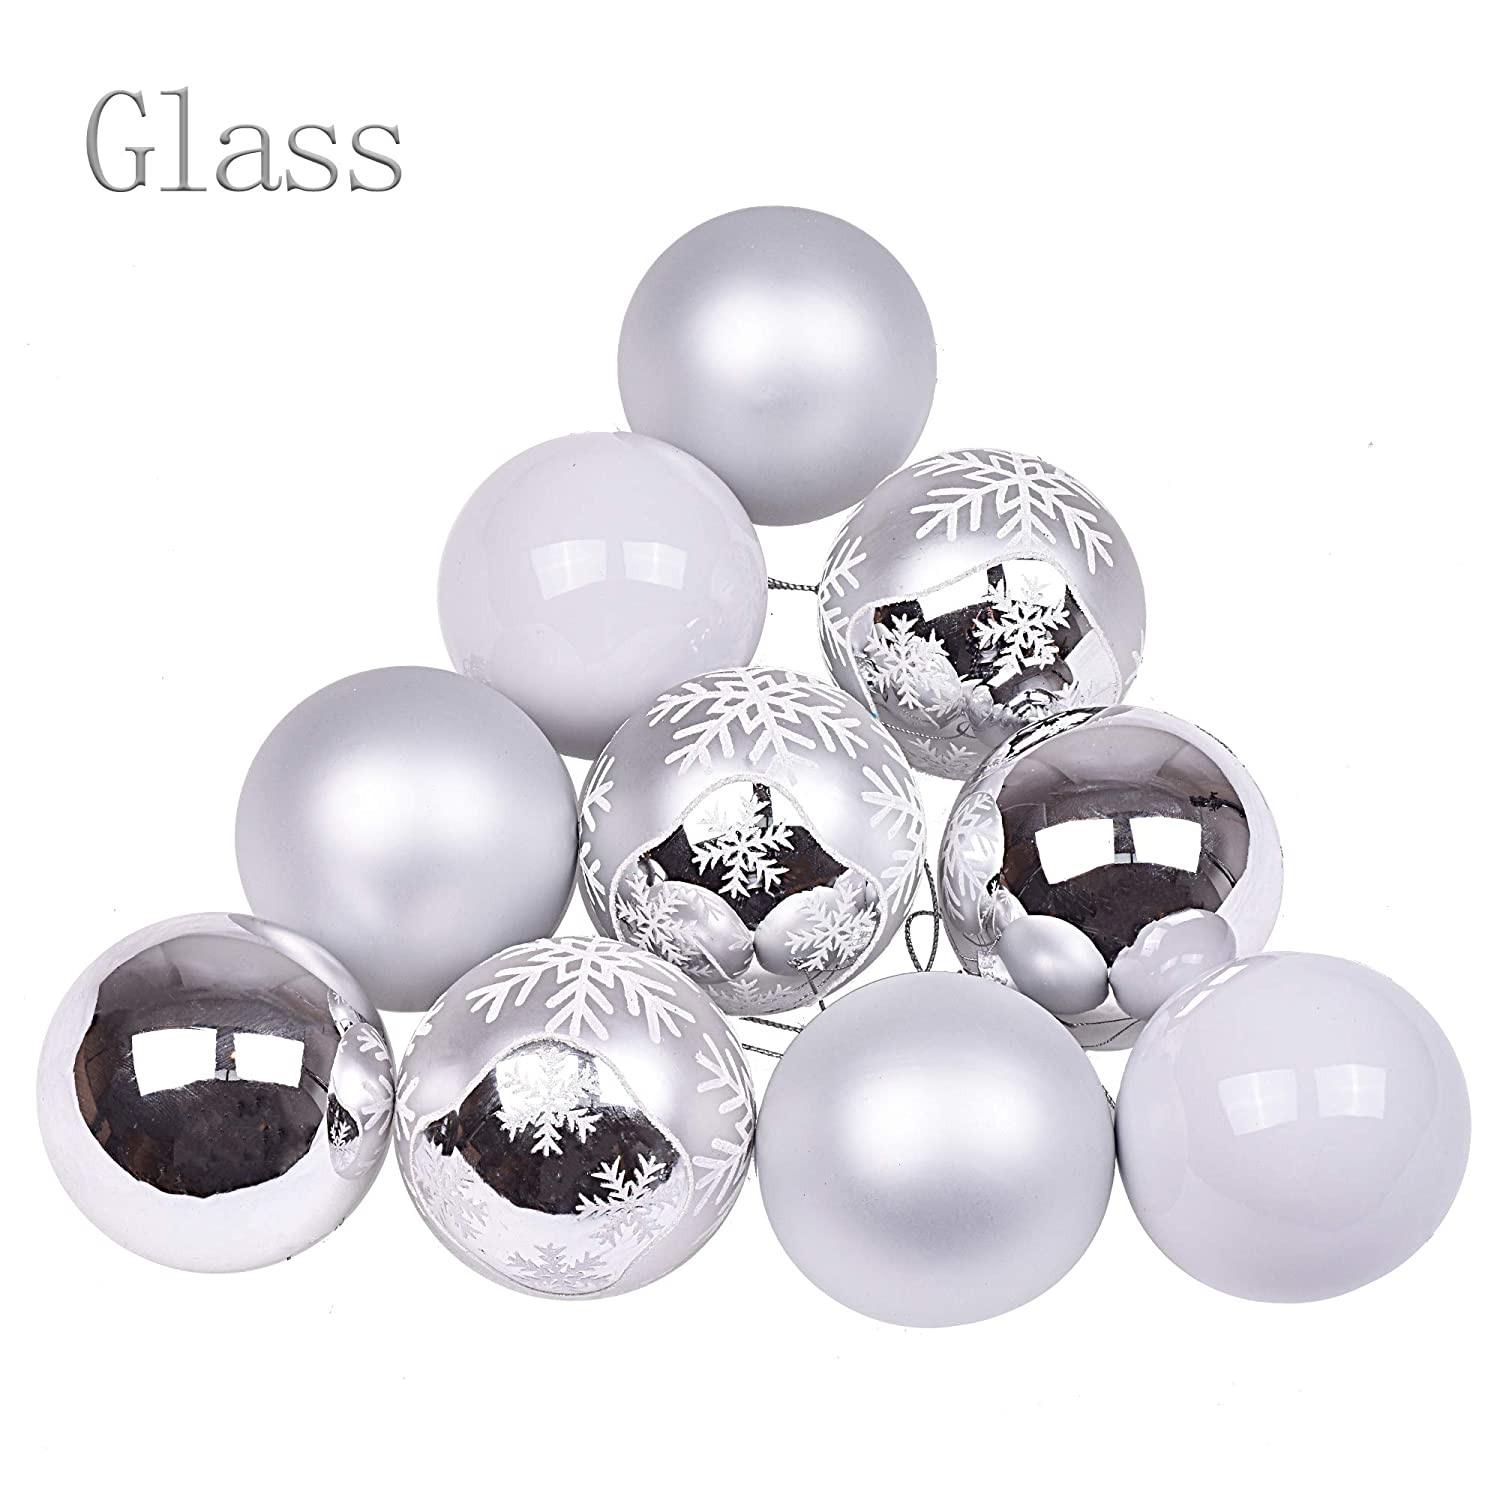 Frozen Christmas Decorations.Victor S Workshop 12pcs Christmas Glass Baubles 2 4 6cm Frozen Winter Silver White Ball Ornaments Christmas Tree Decorations Themed With Matching